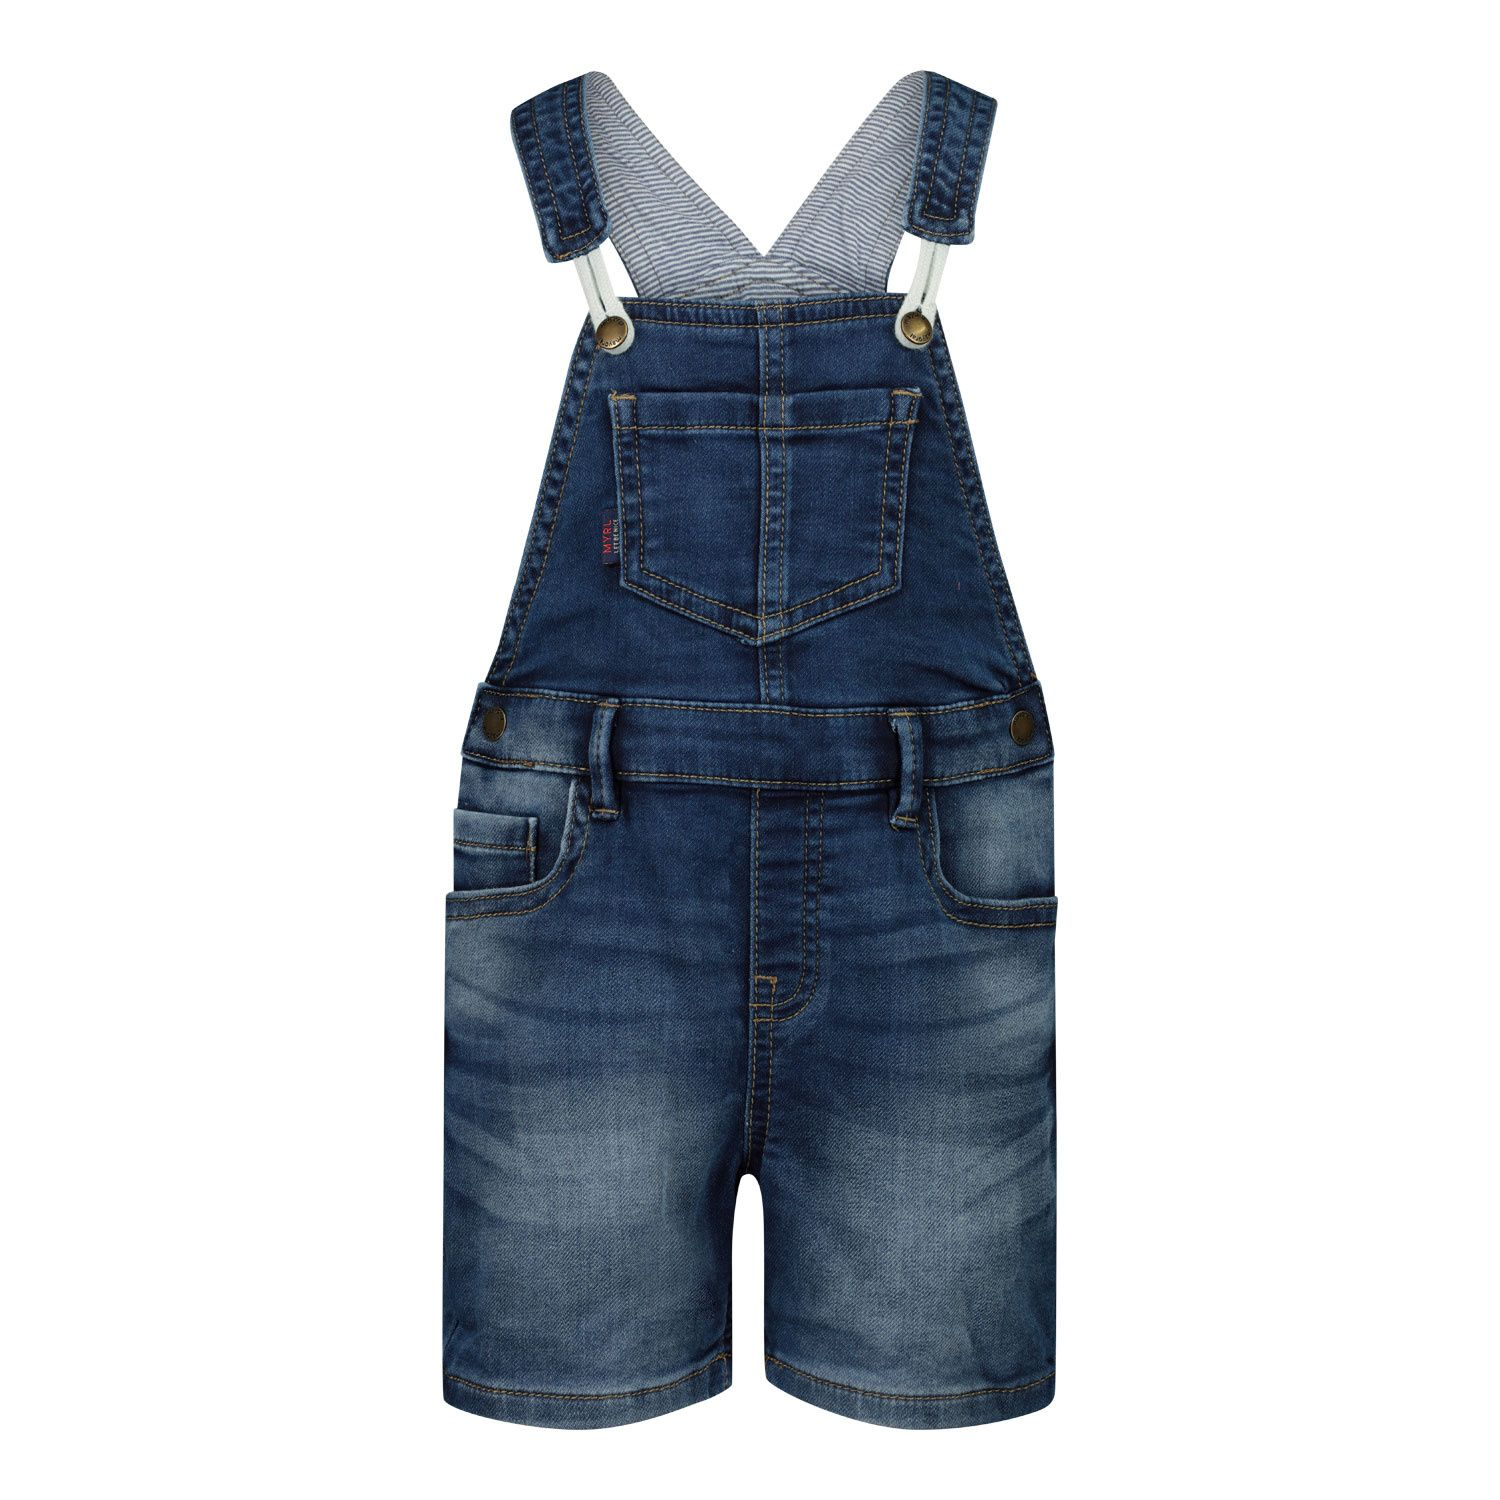 Picture of Mayoral 1664 baby shorts jeans